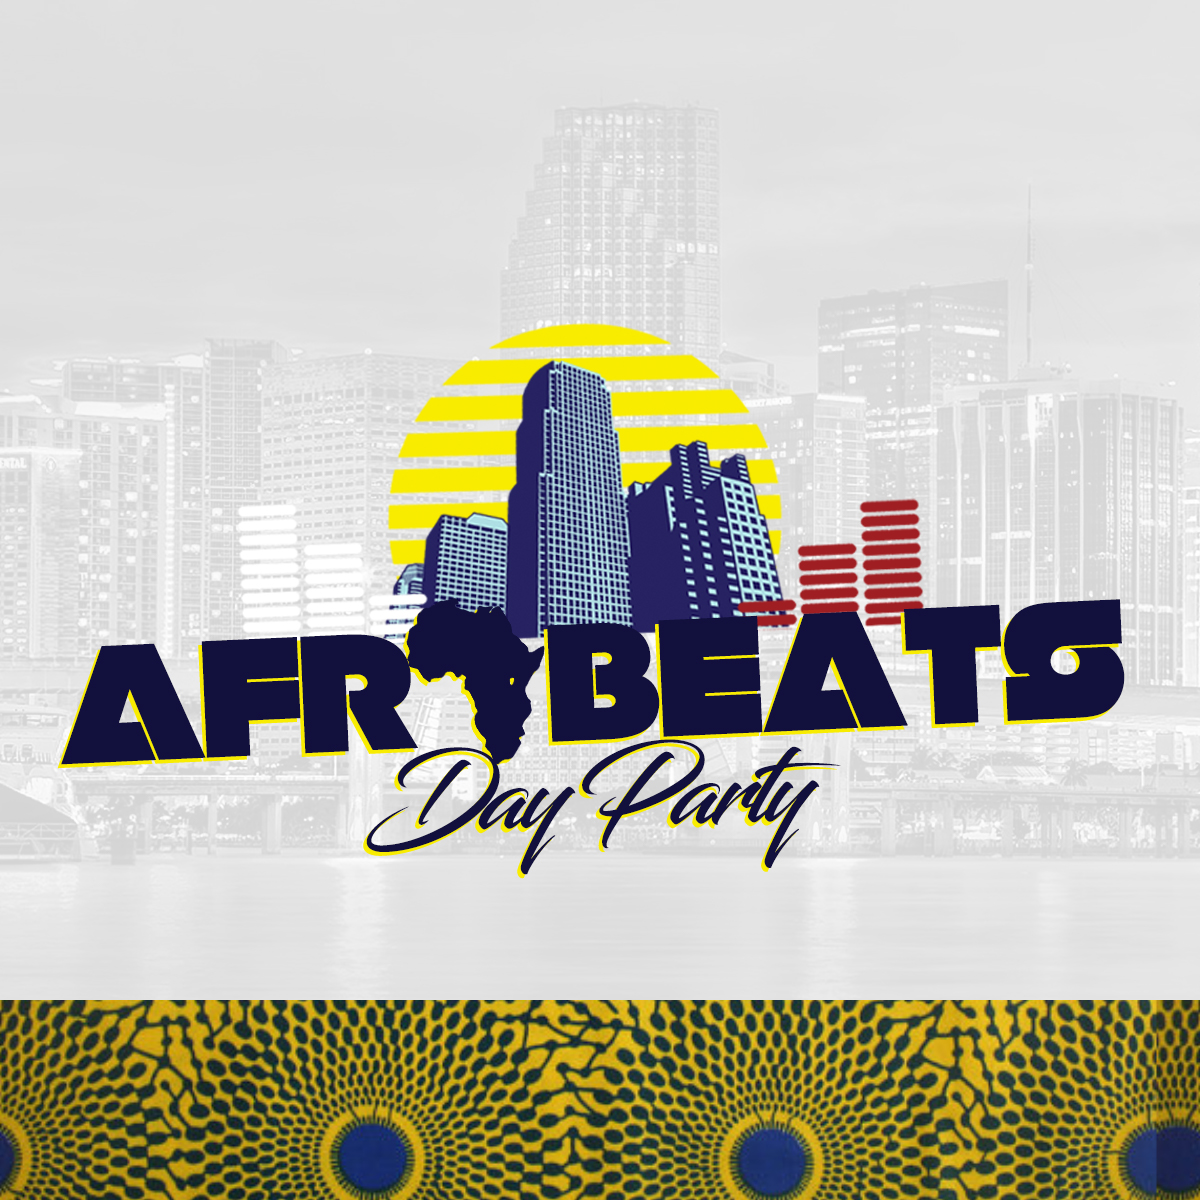 Afrobeats (Afro-Caribbean) Day Party | Labor Day Weekend @ BLUME